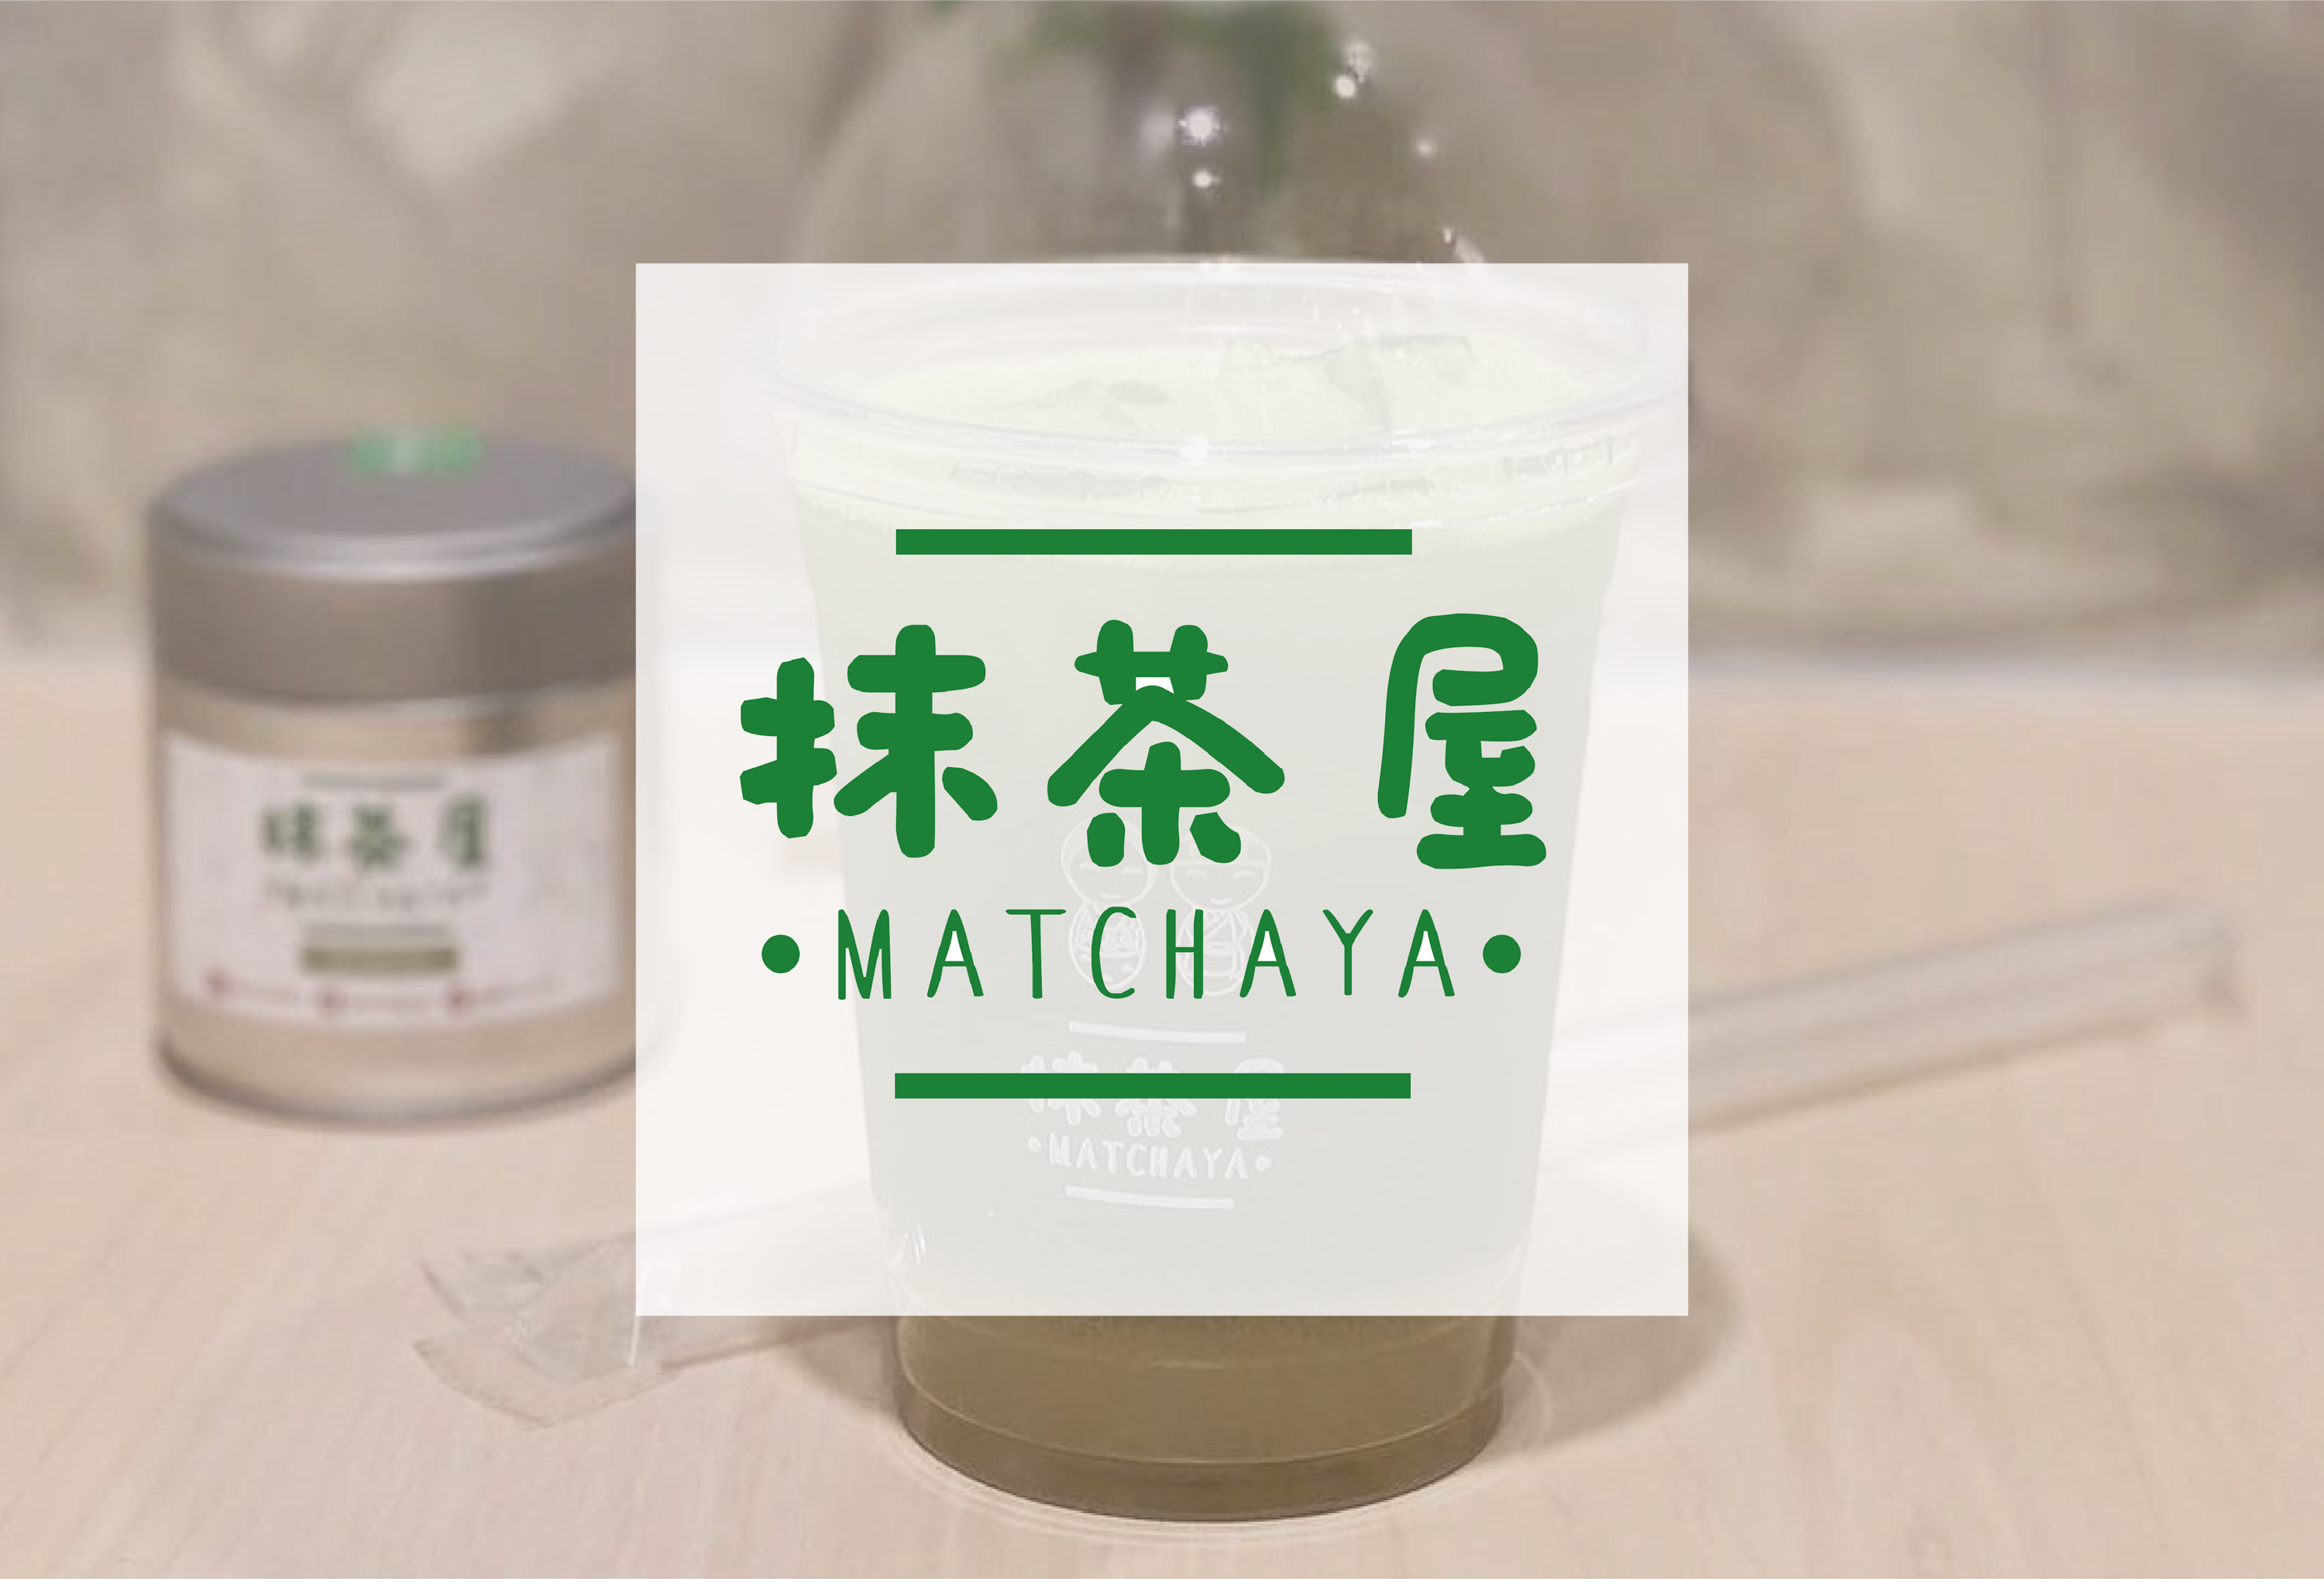 Matchaya at Singapore Tea Festival 2018